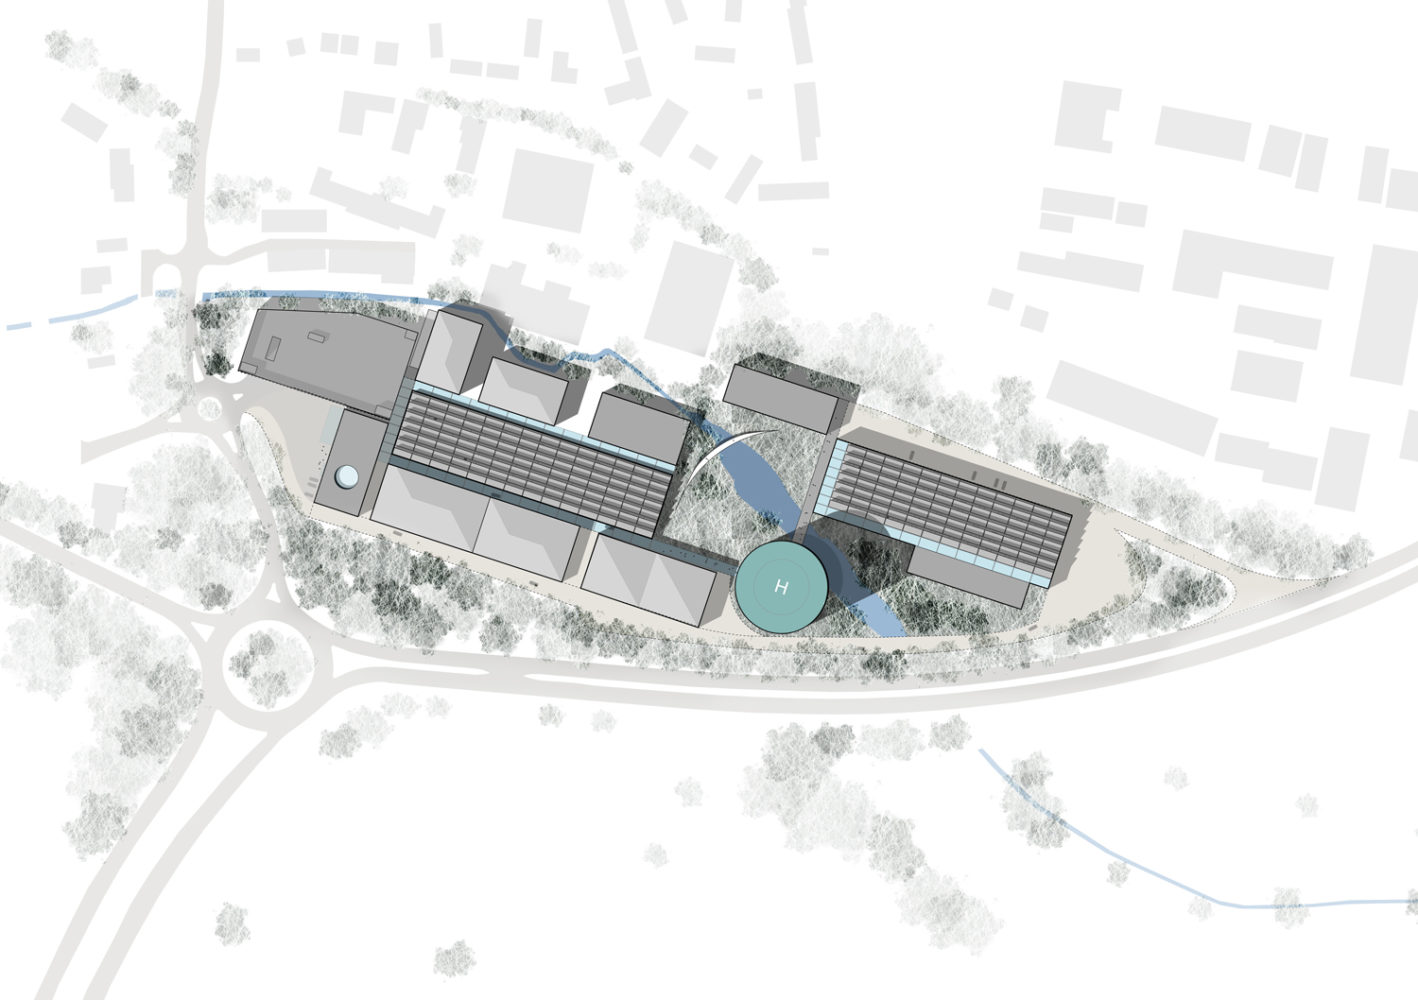 F1 Facility Site Plan